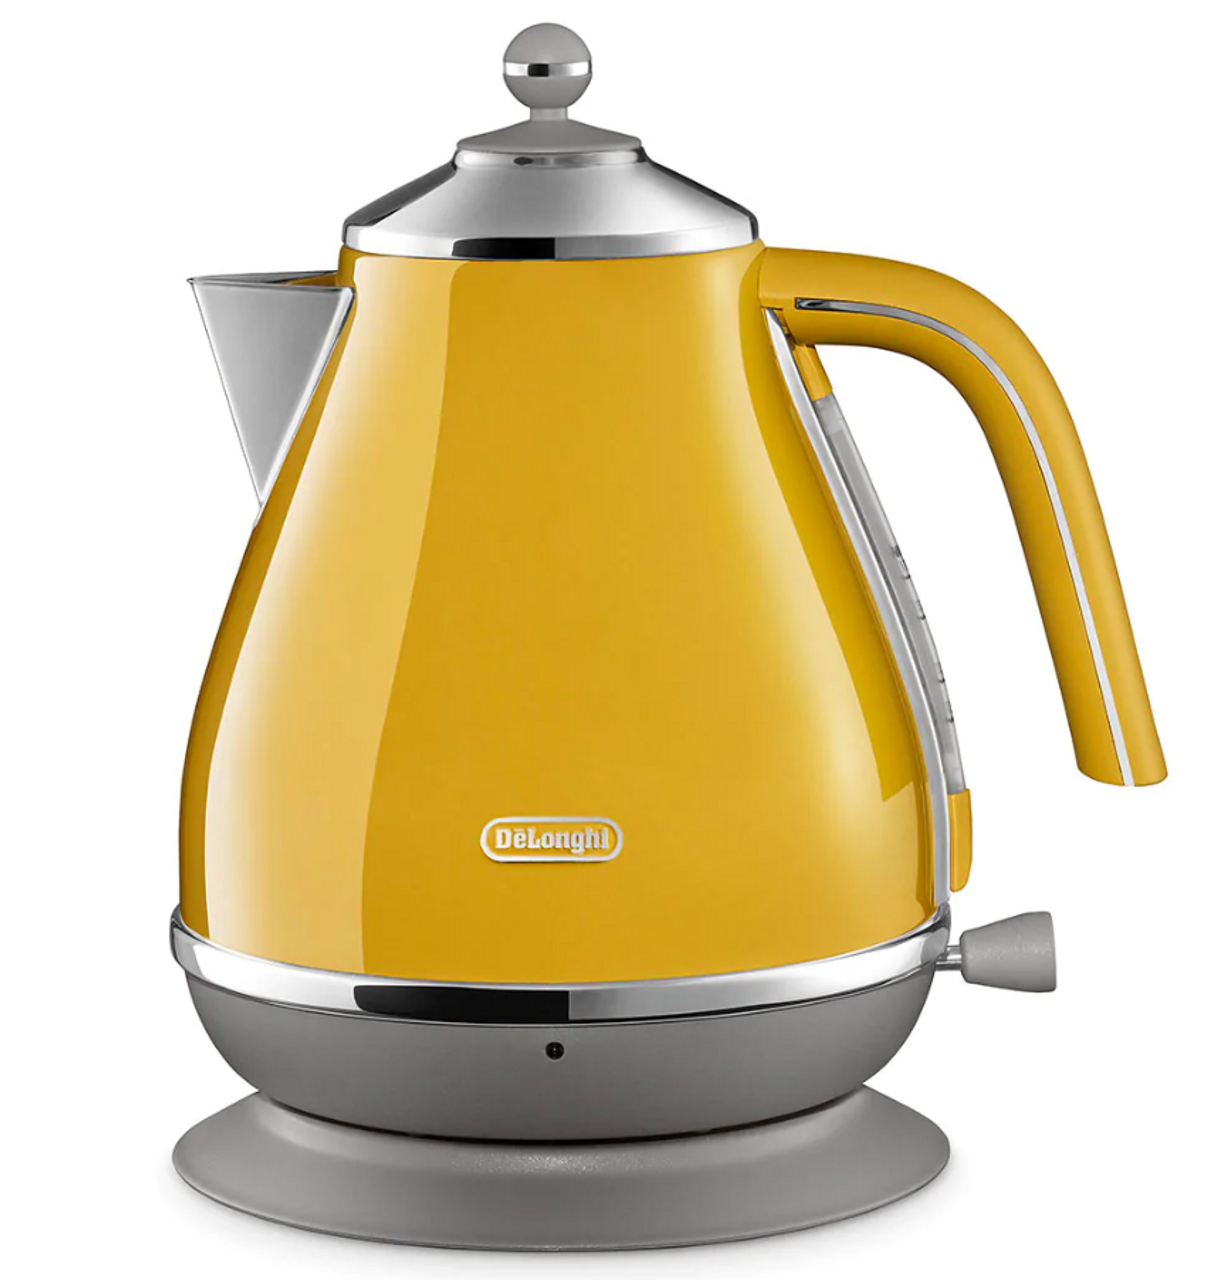 Delonghi KBOC2001Y 1.7L Icona Capitals Kettle with Swivel Base - New York Yellow